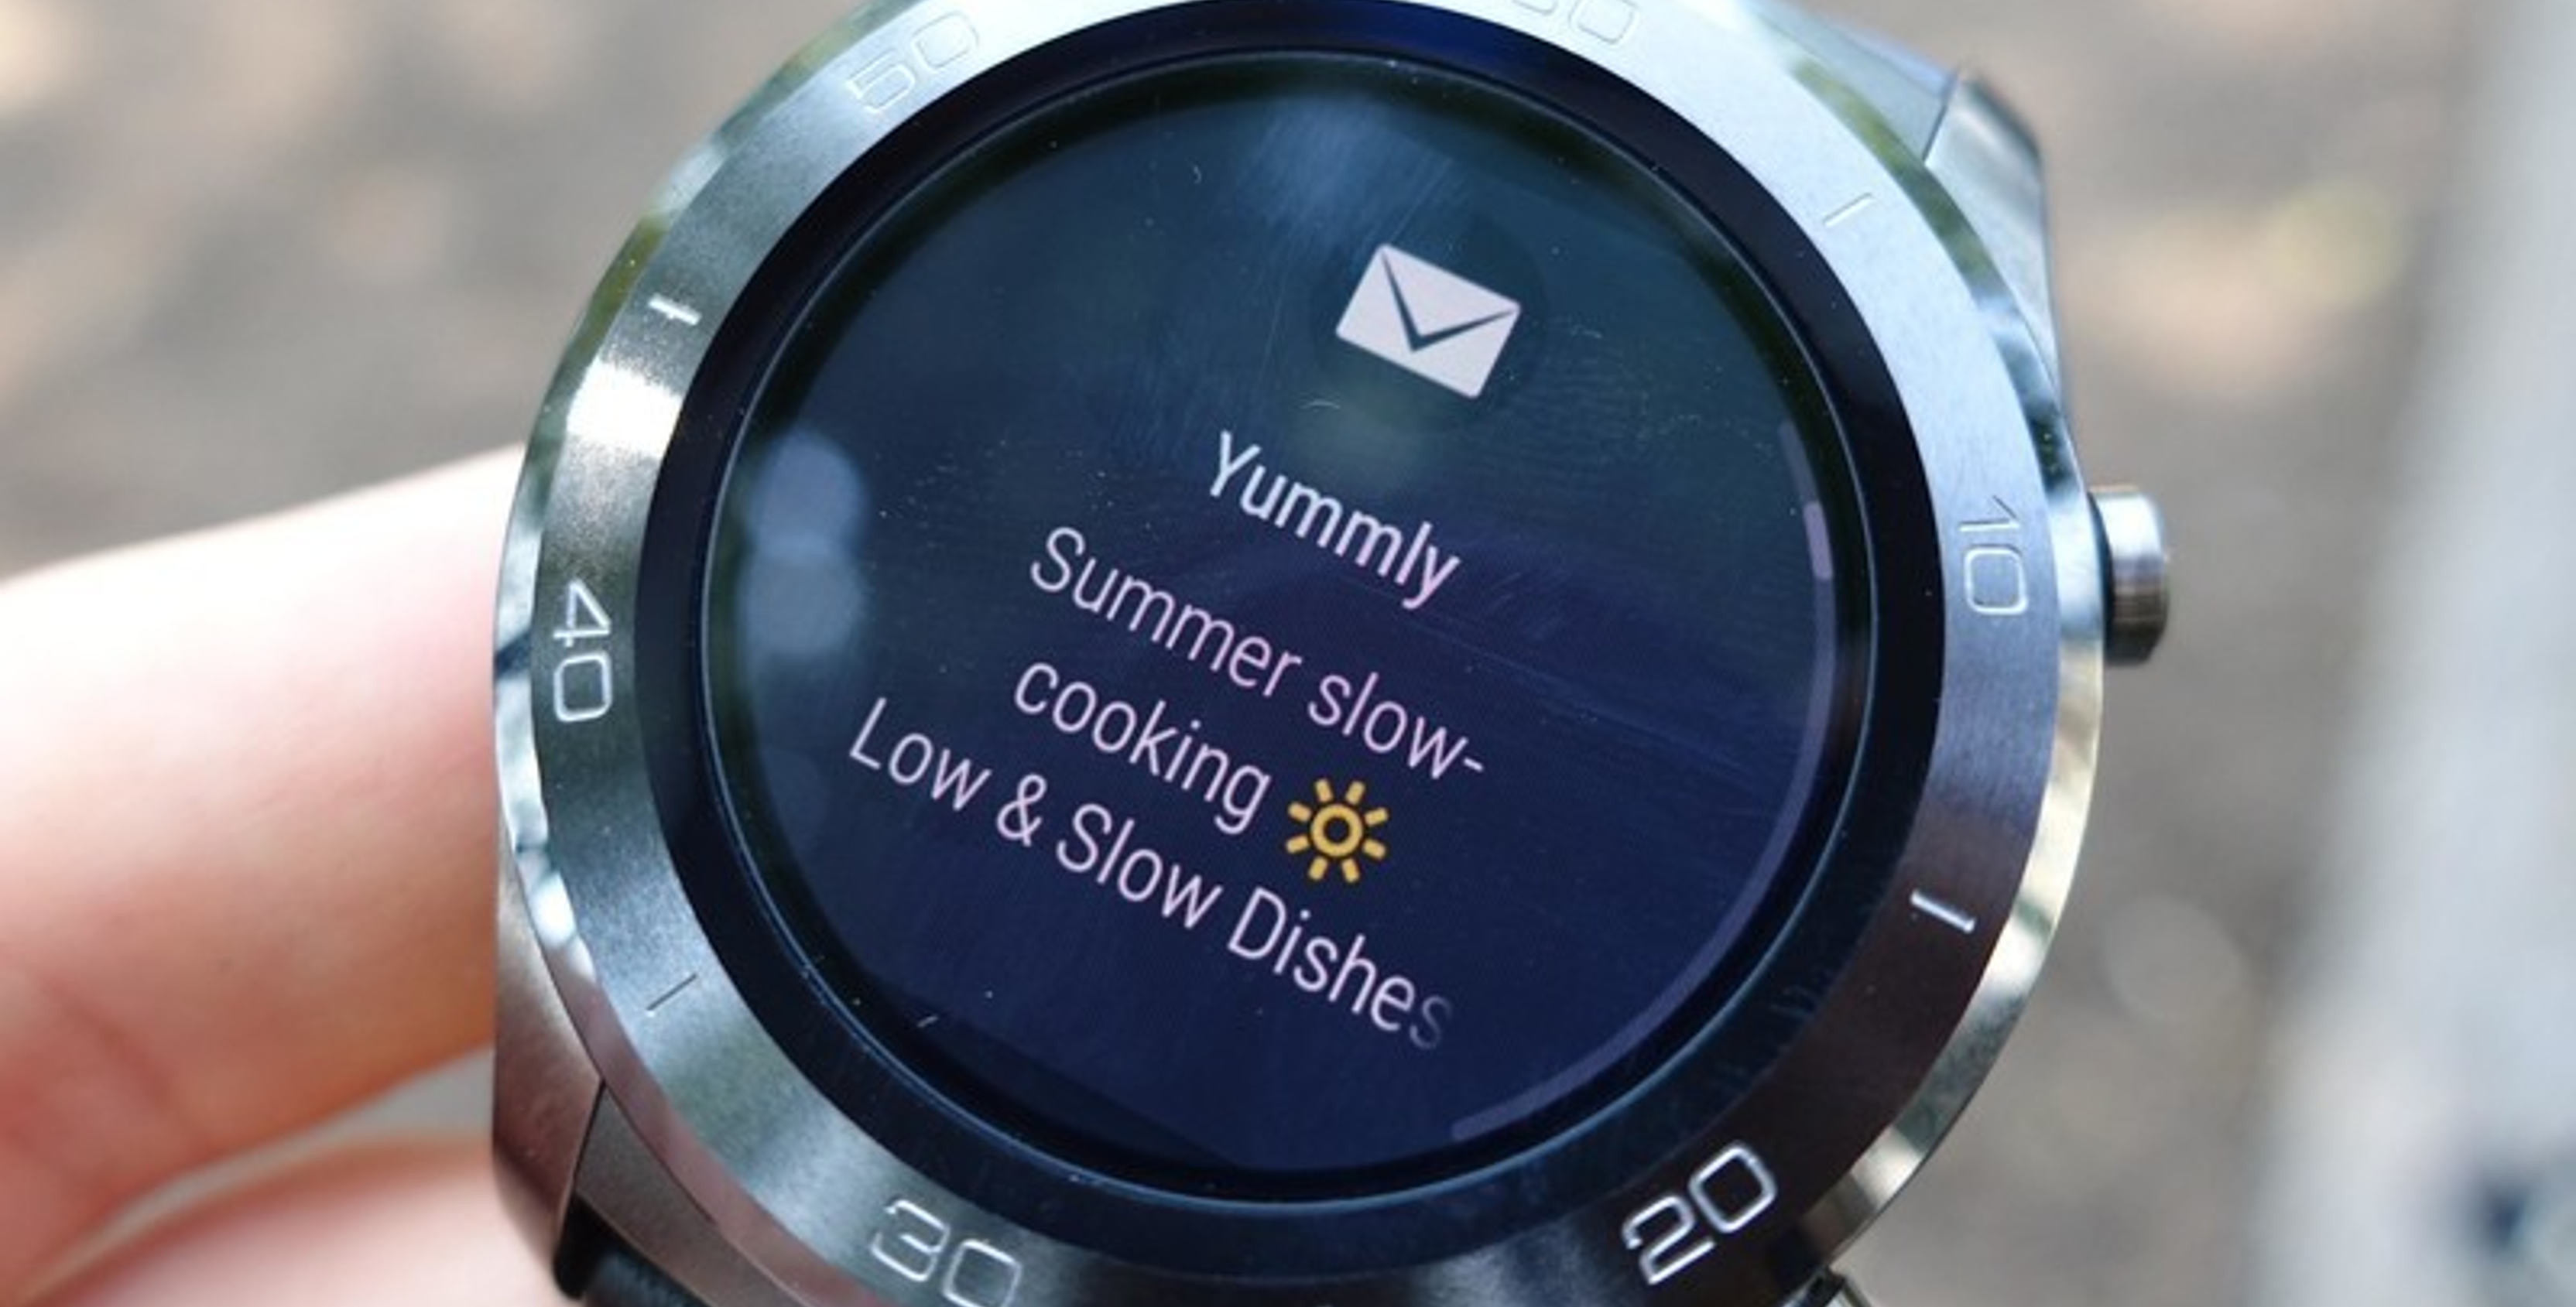 Android Wear 2.8 update includes darker background, better notification glanceability